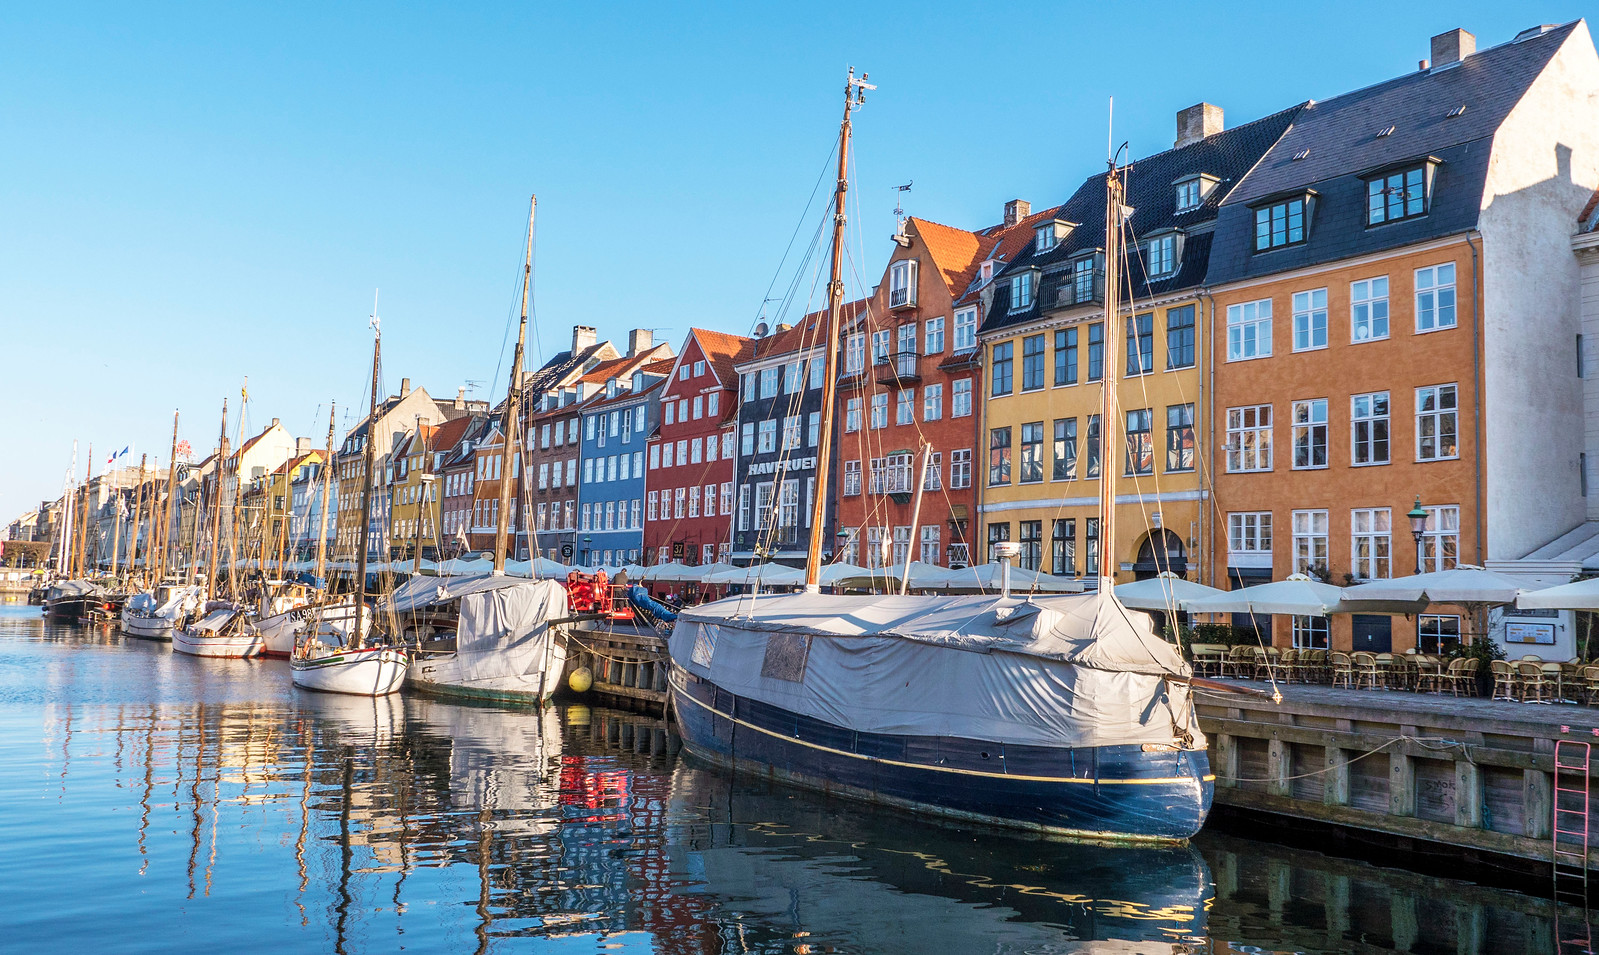 Copenhagen travel guide - Nyhavn - Famous and iconic Copenhagen attraction